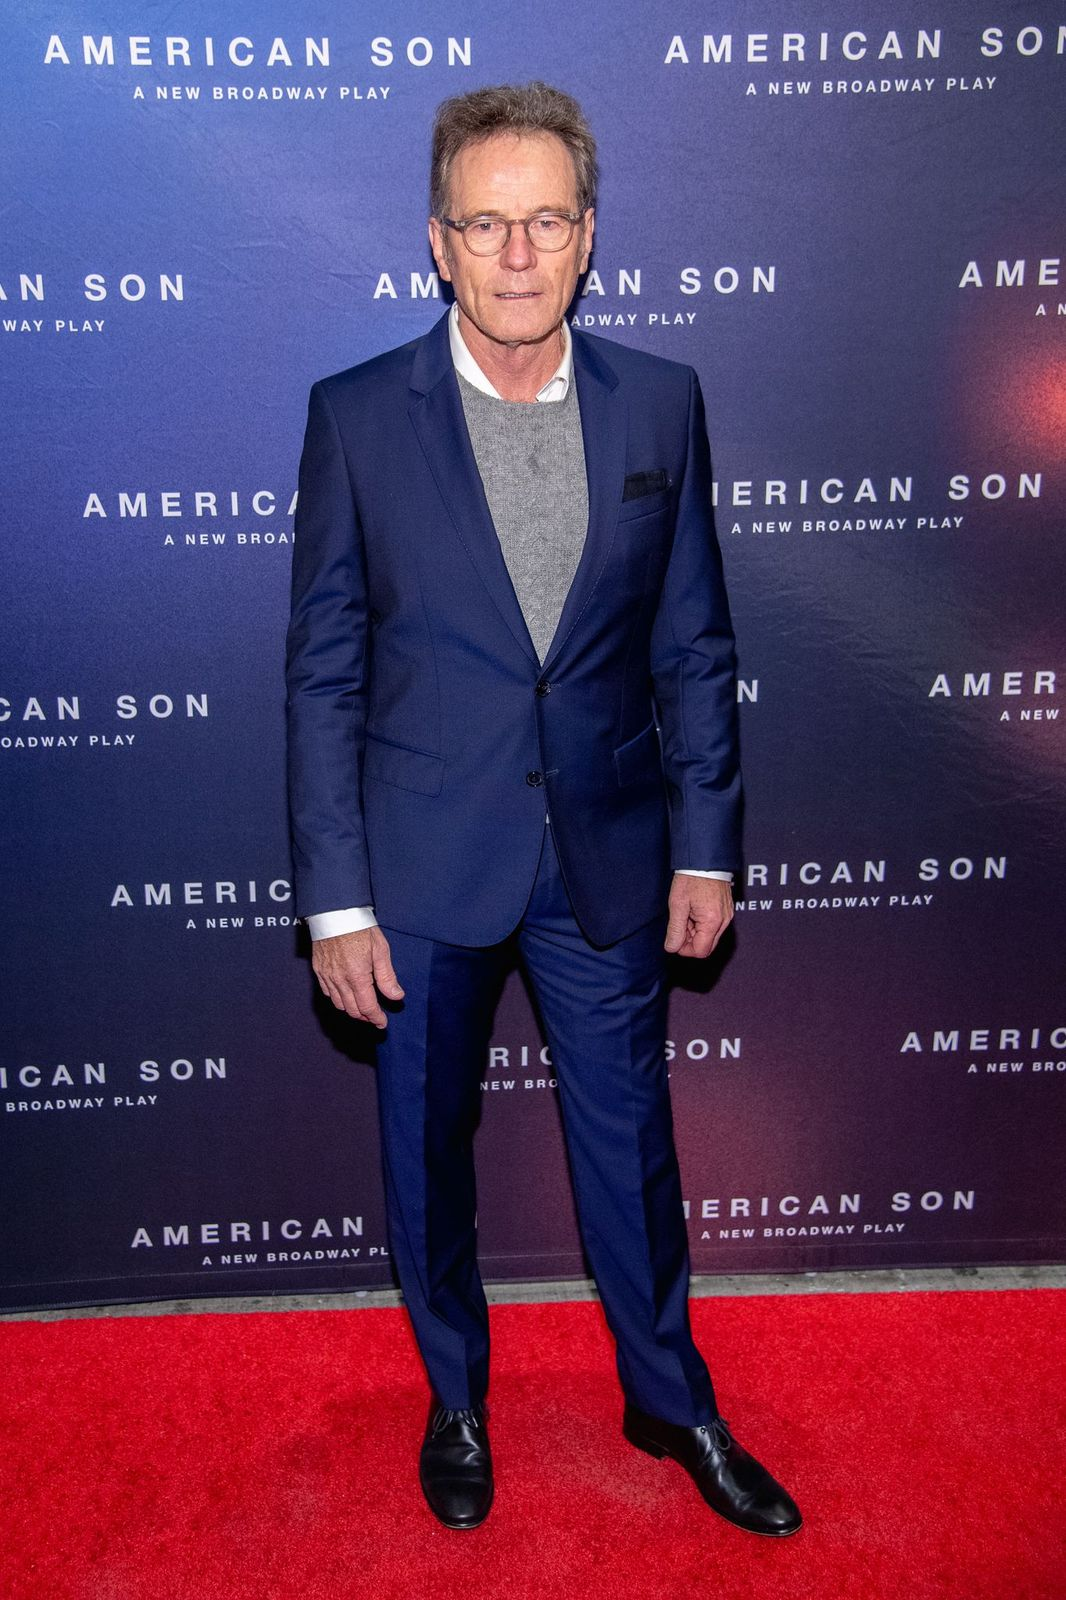 """Bryan Cranston at the opening night of""""American Son""""on November 04, 2018 